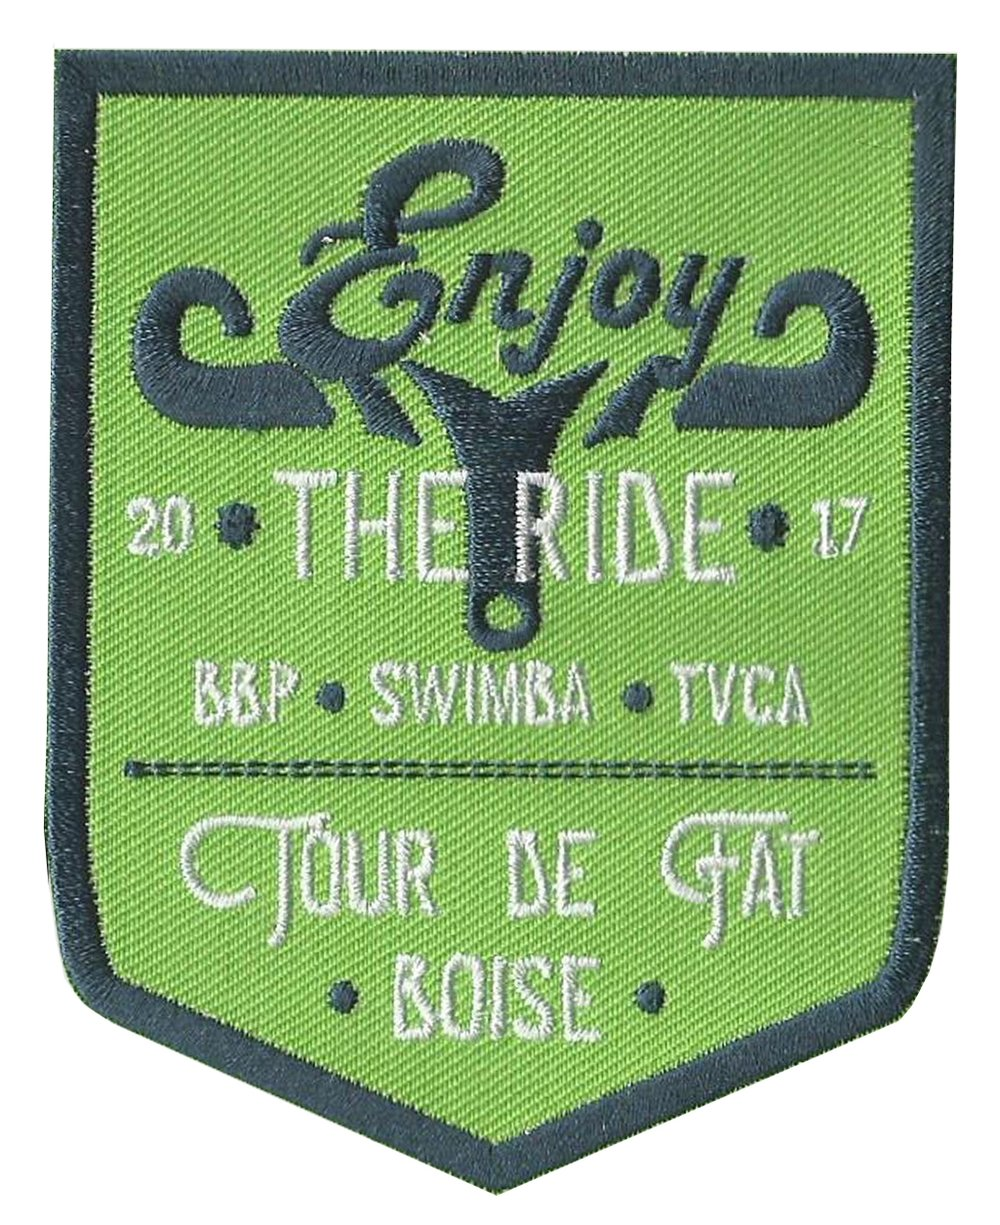 tdf patch.jpg